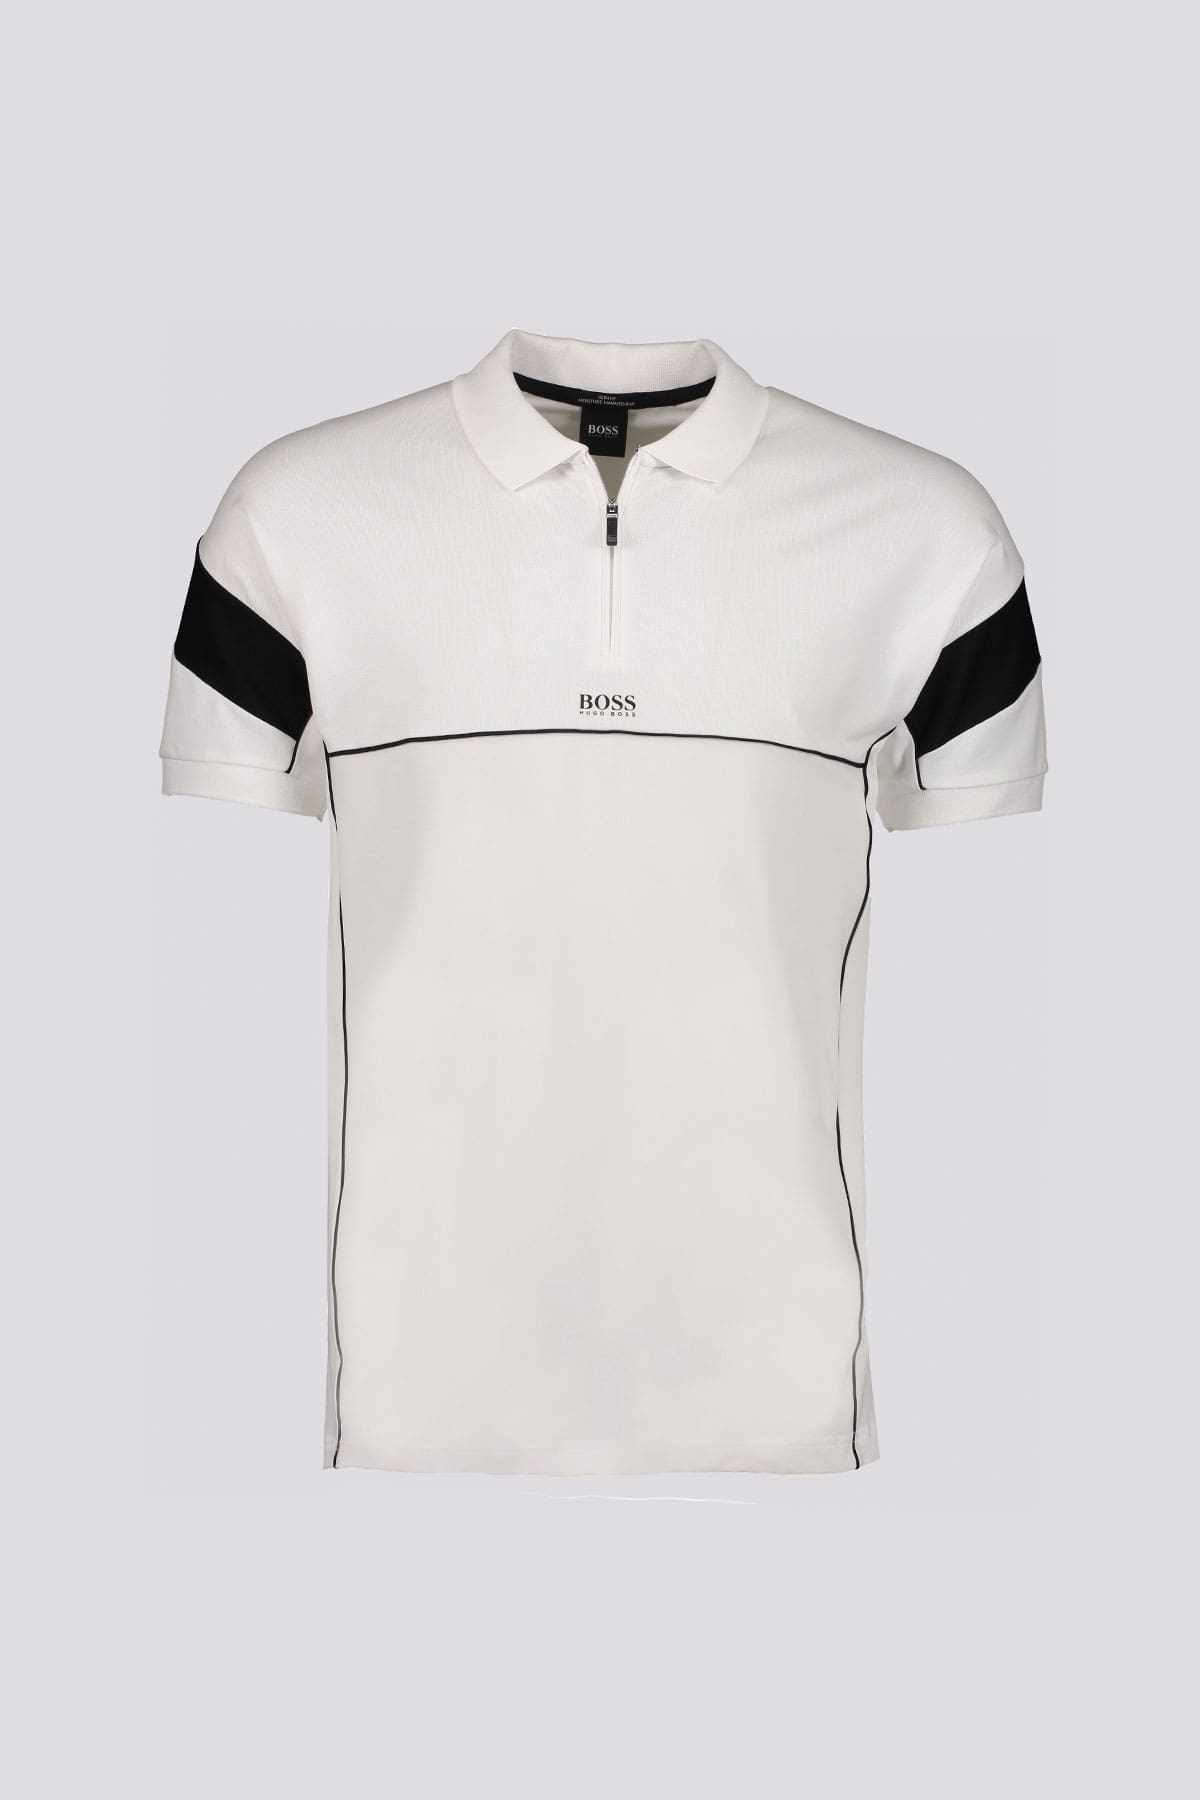 Polo slim fit marca BOSS color blanca con cuello con cremallera